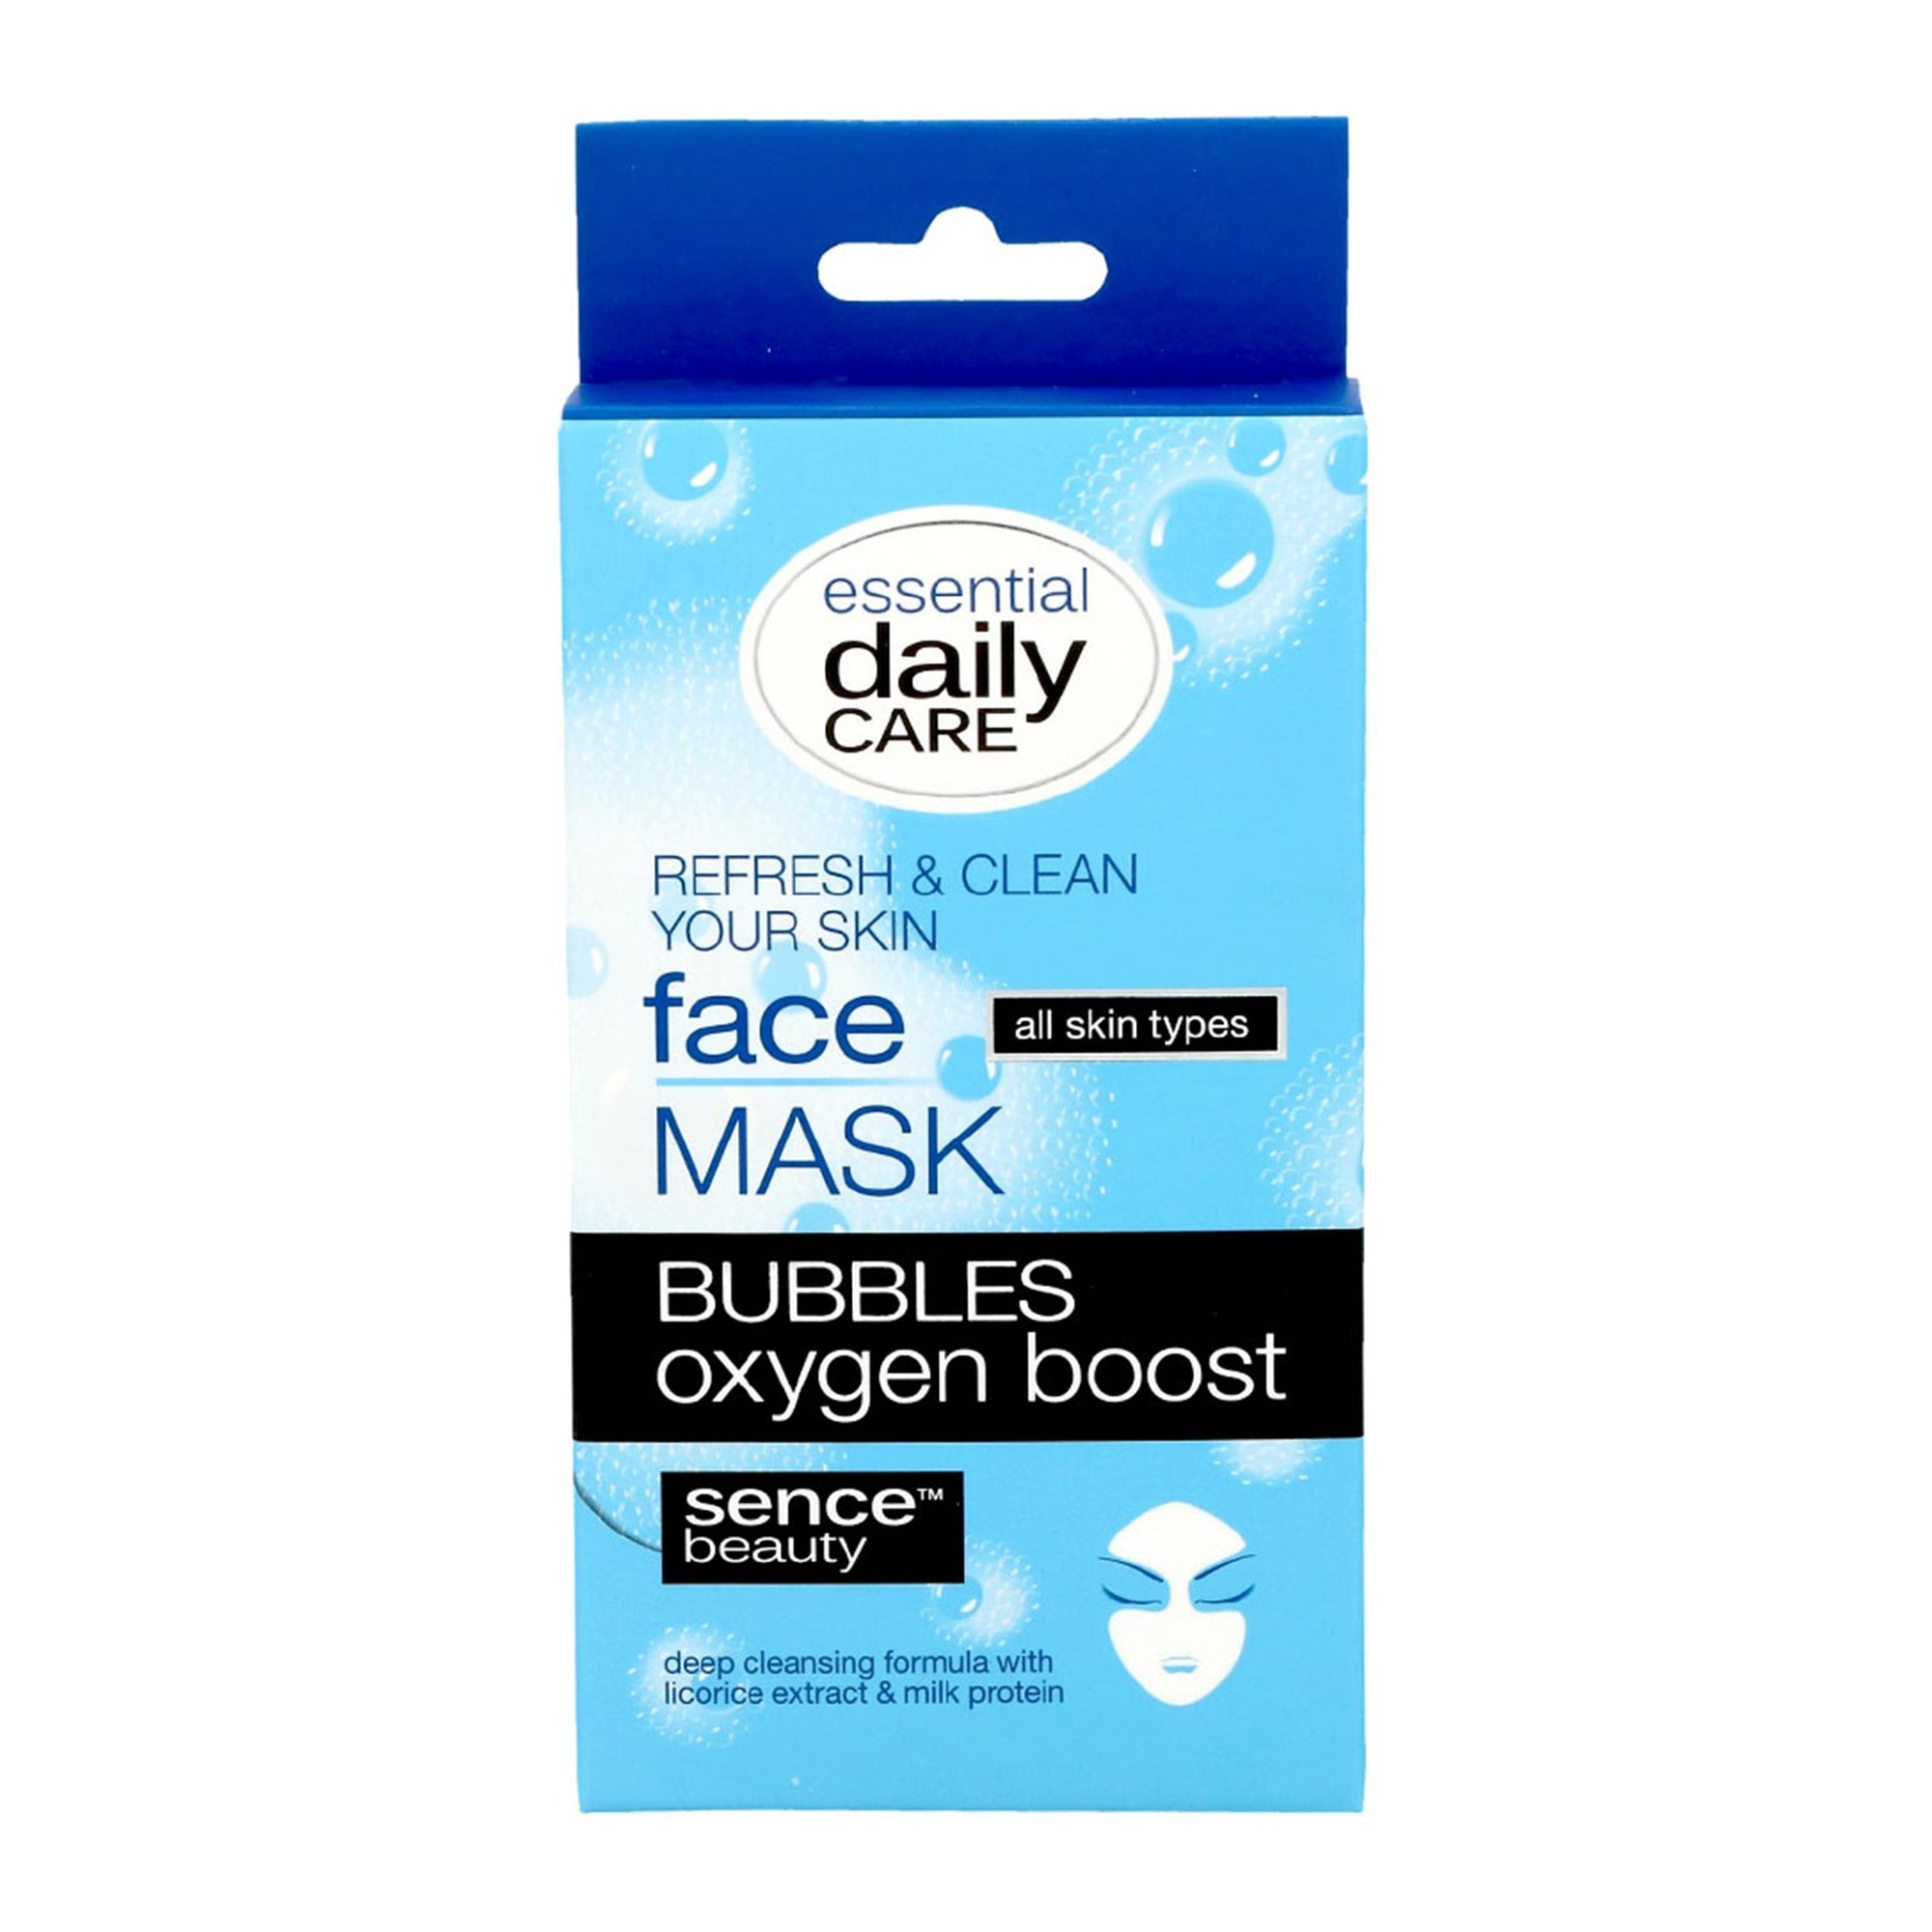 Sencebeauty Facial Bubble Mask 3Pk